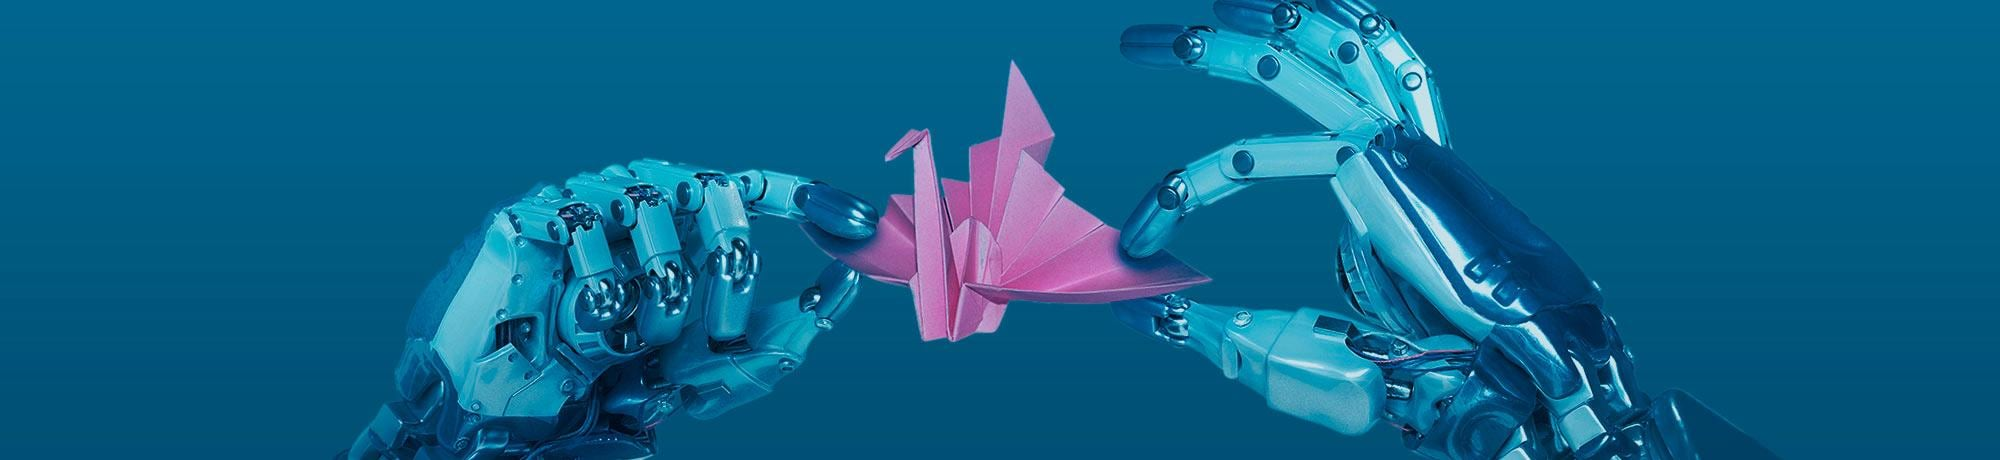 Origami and blue robot